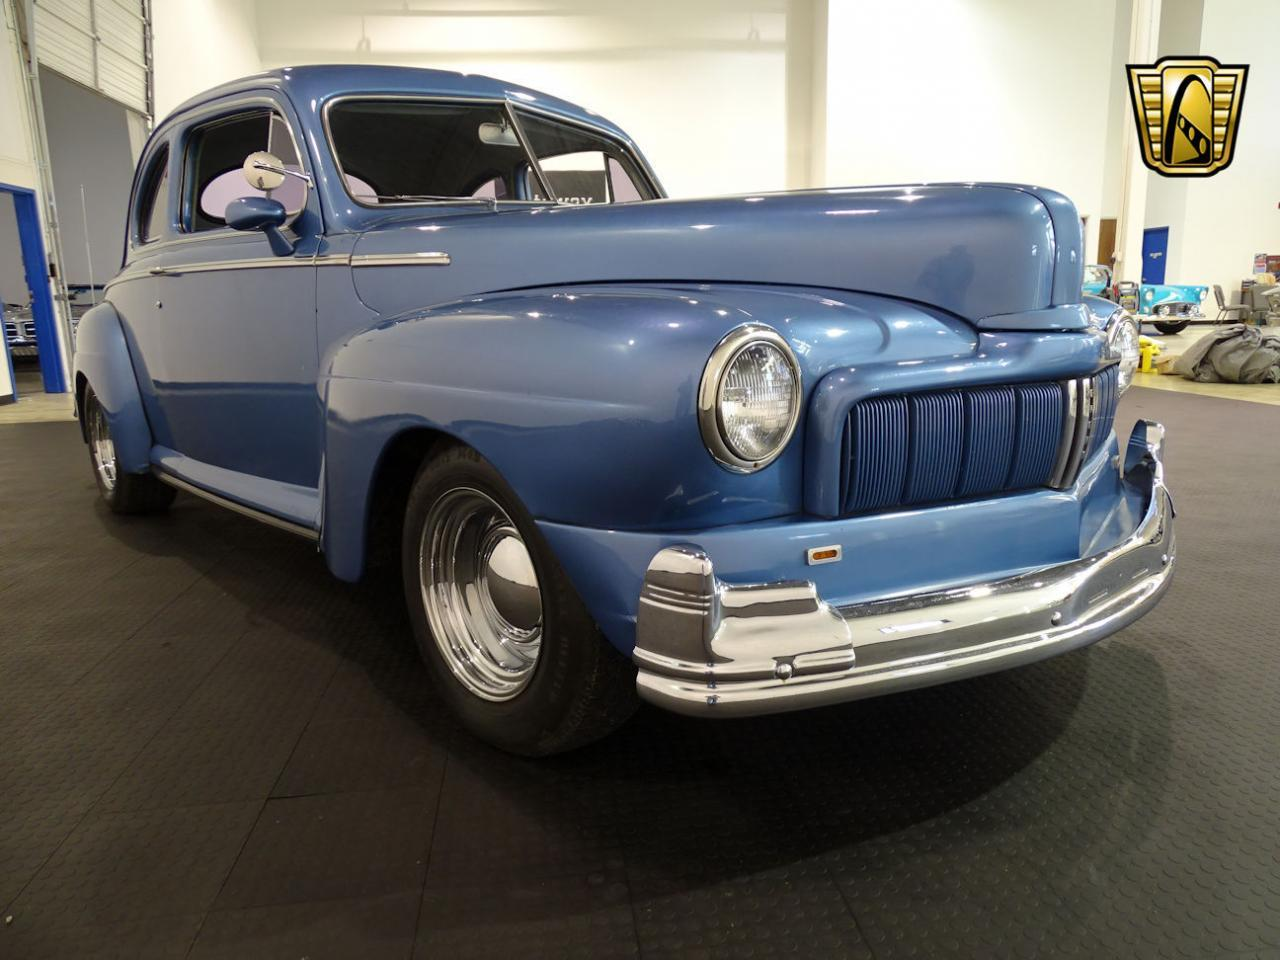 Large Picture of Classic 1947 Mercury Coupe located in Indianapolis Indiana - $19,995.00 - MFNJ